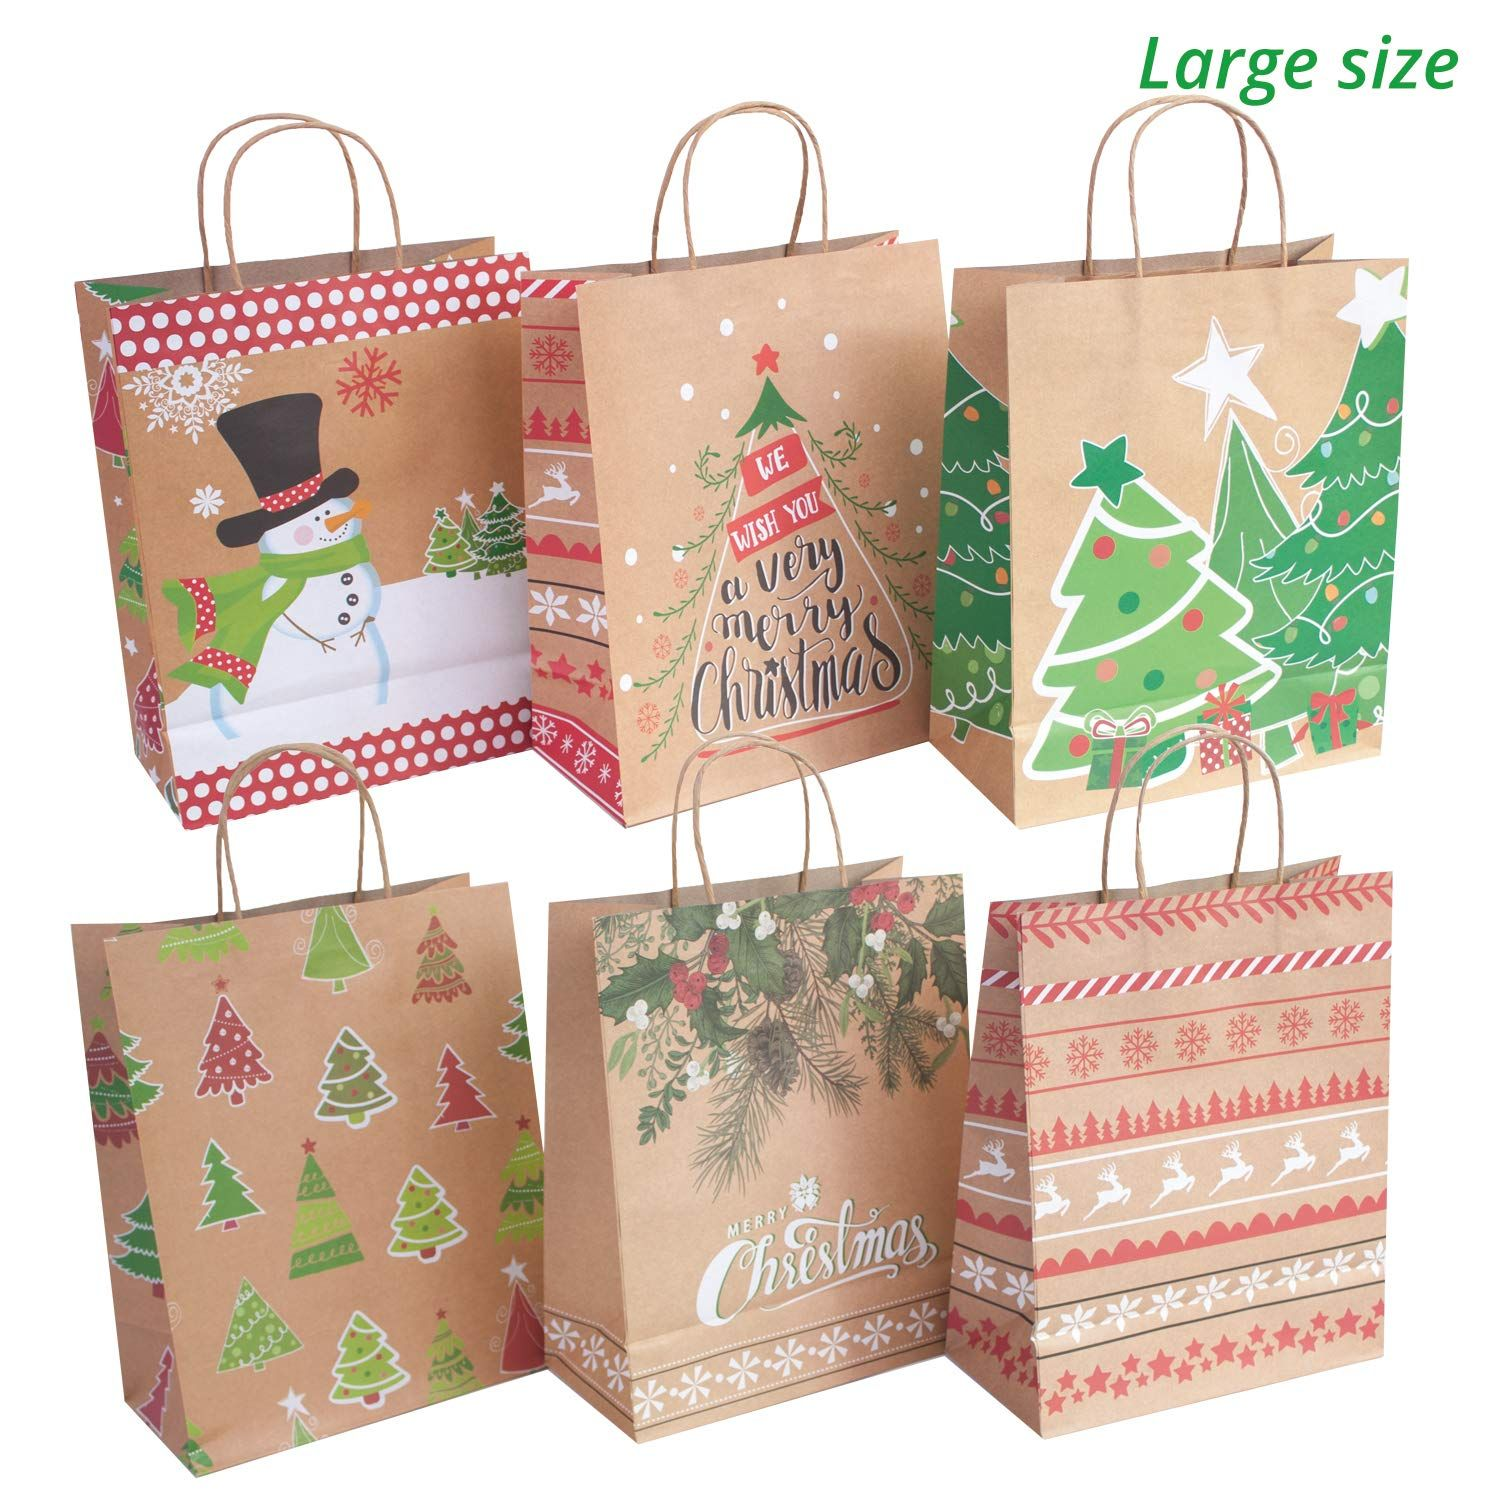 24 Kraft Christmas Gift Bags Assorted Sizes With 60 Count Tags Bulk Set 6 Xl Large Medium Small